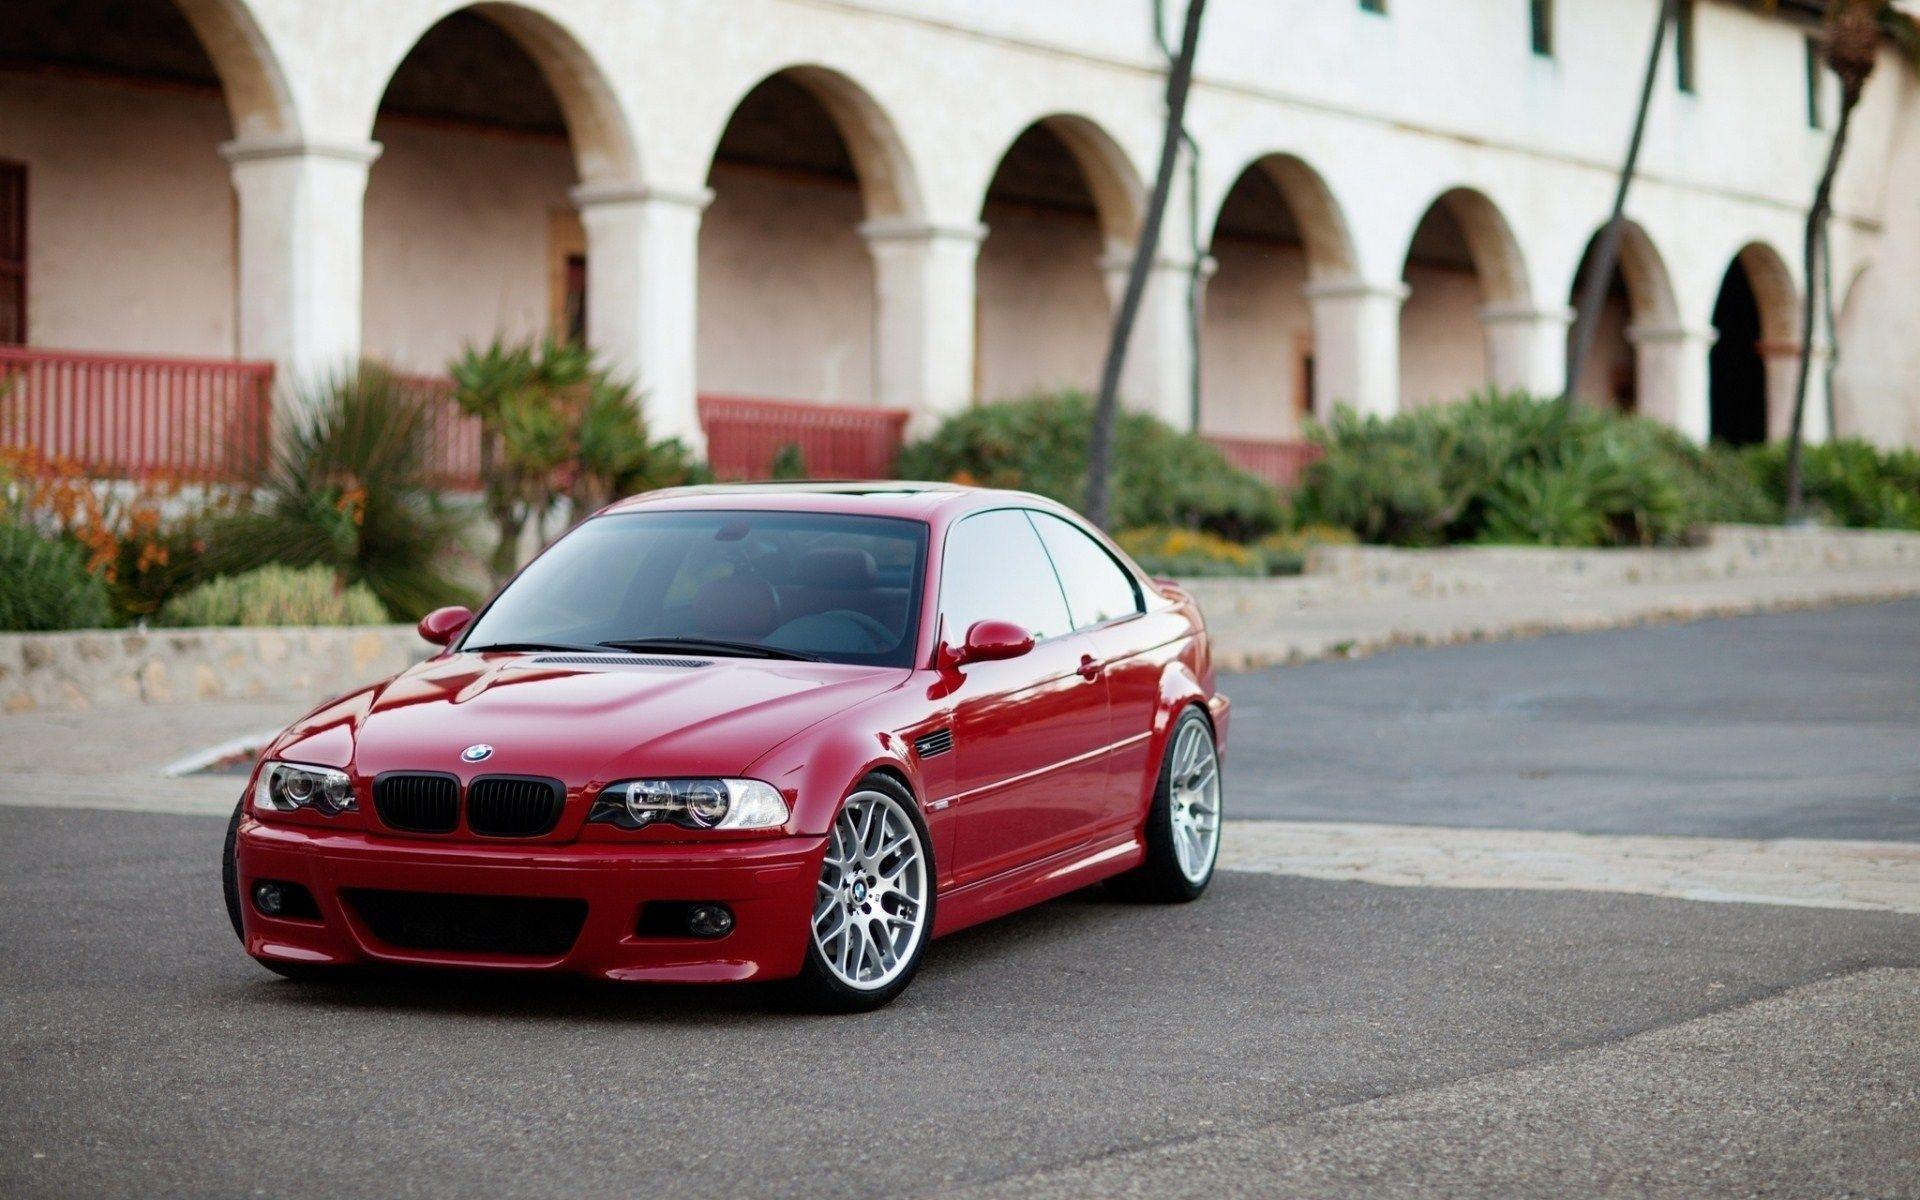 Wallpapers For > Bmw E46 M3 Iphone Wallpapers